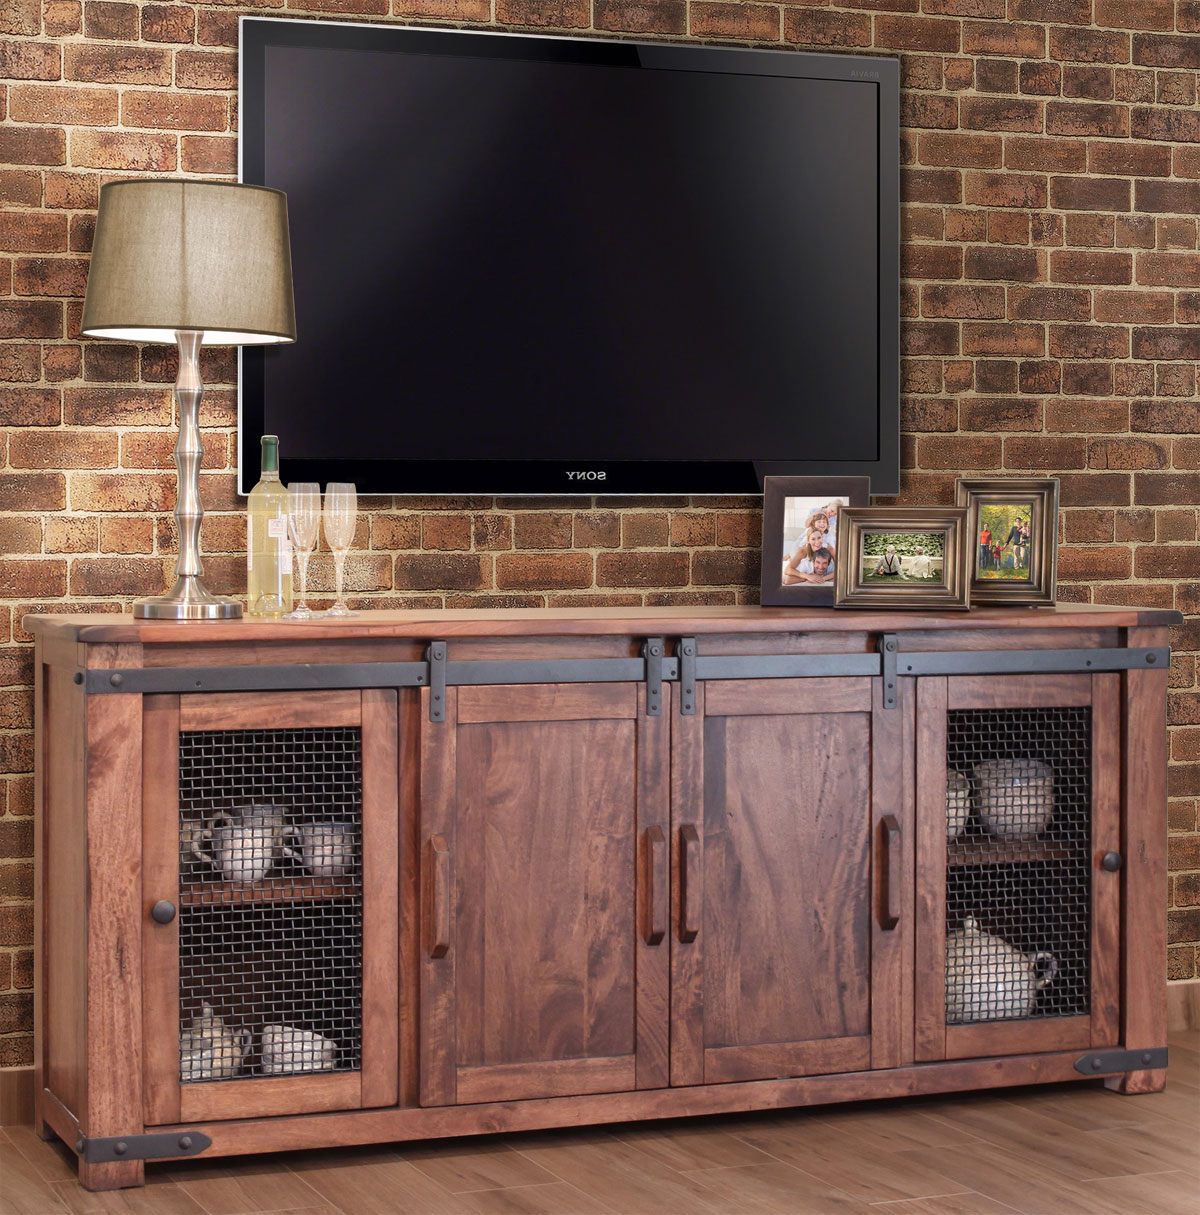 Shabby Chic Tv Stand Ideas Fireplace Lowes Small Target Rustic Pertaining To Current Rustic Furniture Tv Stands (Gallery 8 of 20)